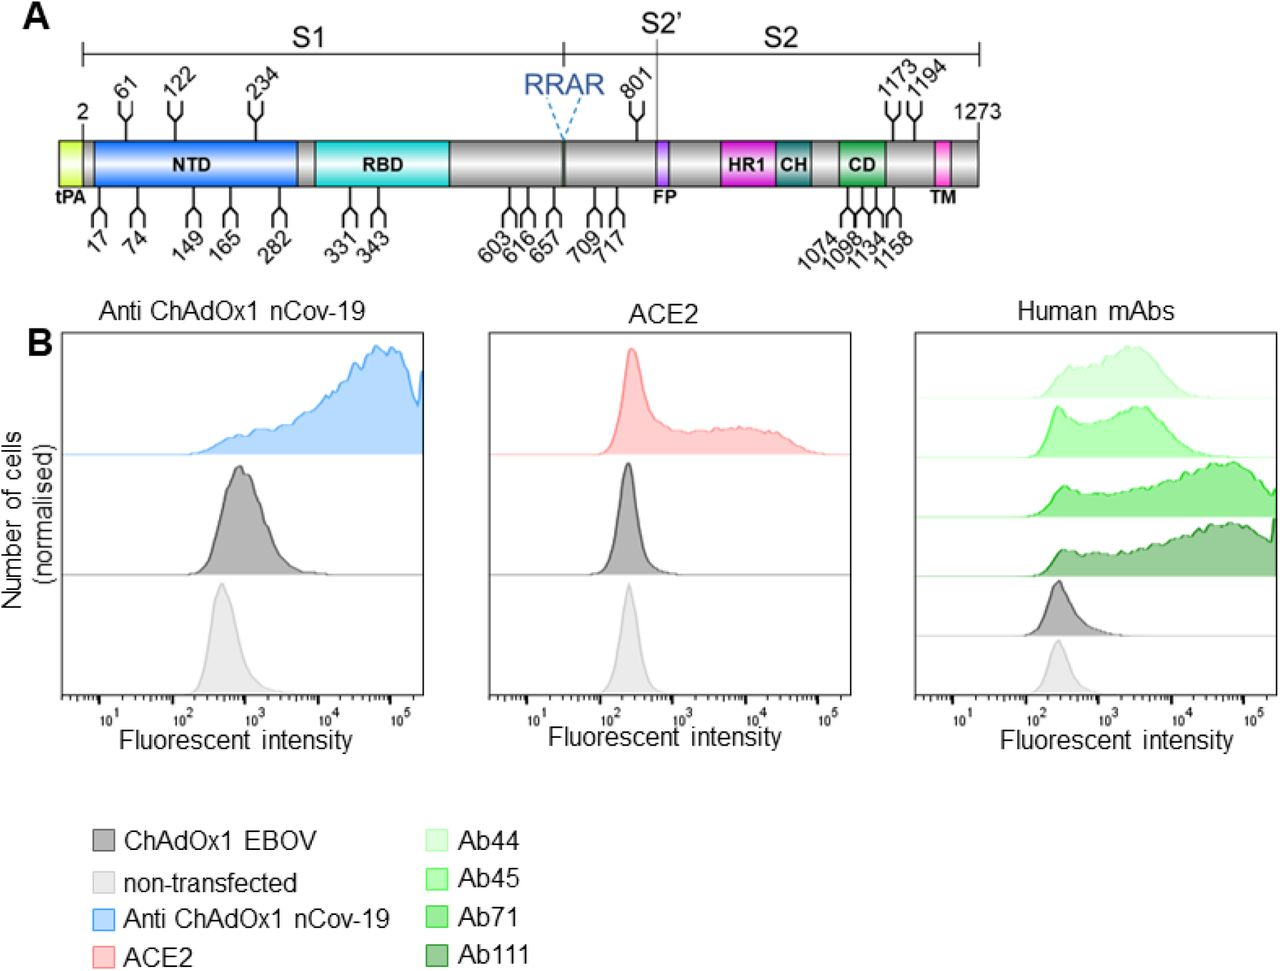 ChAdOx1 nCoV-19 produces membrane associated SARS-CoV-2 S glycoprotein in native conformations able to bind its host receptor, ACE2. (A) Schematic representation of the vaccine encoded SARS-CoV-2 S protein, showing the position of N-linked glycosylation amino-acid sequons (NXS/T, where X≠P) as branches. Protein domains are illustrated: N-terminal domain (NTD), receptor-binding domain (RBD), fusion peptide (FP), heptad repeat 1 (HR1), central helix (CH), connector domain (CD), and transmembrane domain (TM), with the additional tPA secretion signal at the N-terminus. (B) HeLa S3 cells were infected with ChAdOx1 nCoV-19 and incubated with either recombinant ACE2, anti-ChAdOx1 nCoV-19 (derived from vaccinated mice) or a panel of human mAbs (Ab44, Ab45, Ab71 and Ab111, which recognise, S2, RBD, trimeric S and NTD respectively) and compared to non-infected controls, analysed by flow cytometry. (Left). Relative frequency of cells and AlexaFluor 488 fluorescence associated with anti-spike detection is plotted. Left, (blue) anti-ChAdOx1 nCoV-19, middle (red), ACE2 and right (shades of green) human mAbs. In dark grey cells infected with an irrelevant ChAdOx1 vaccine and in light grey non-infected cells are shown as a control. Experimental replicates were performed two times and representative data shown.